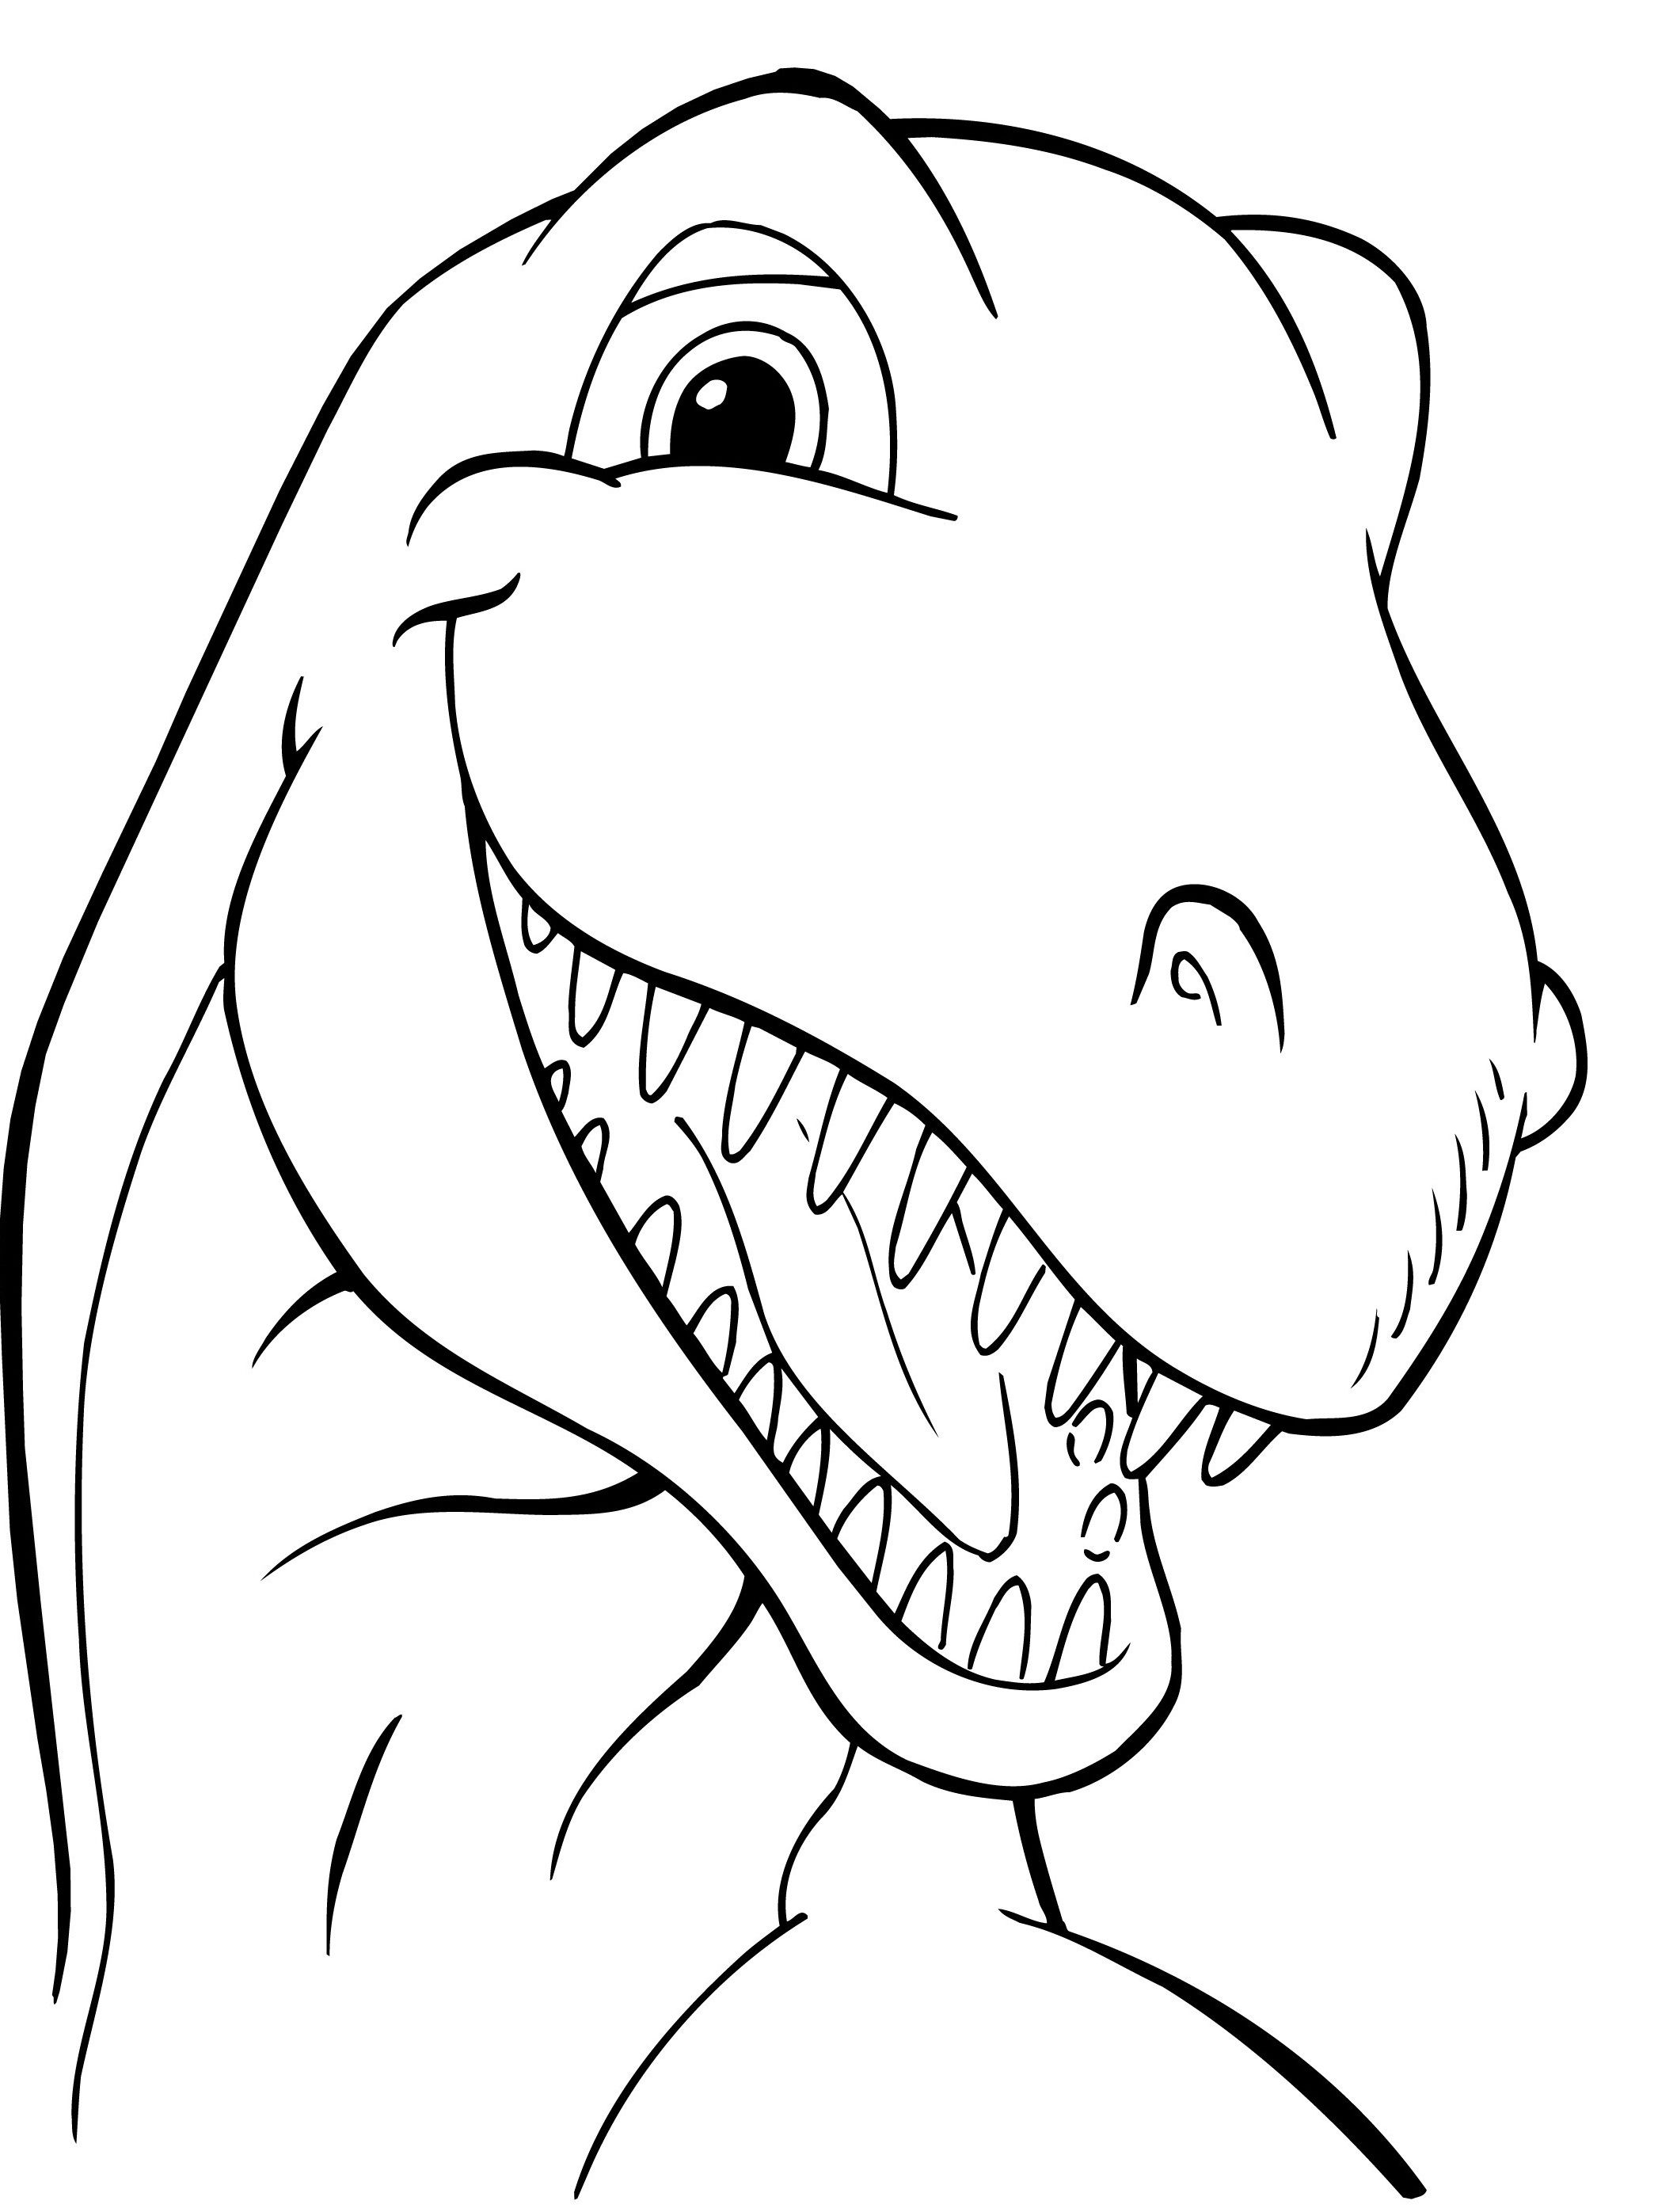 Head Dinosaurs coloring picture for kids Dinosaurios